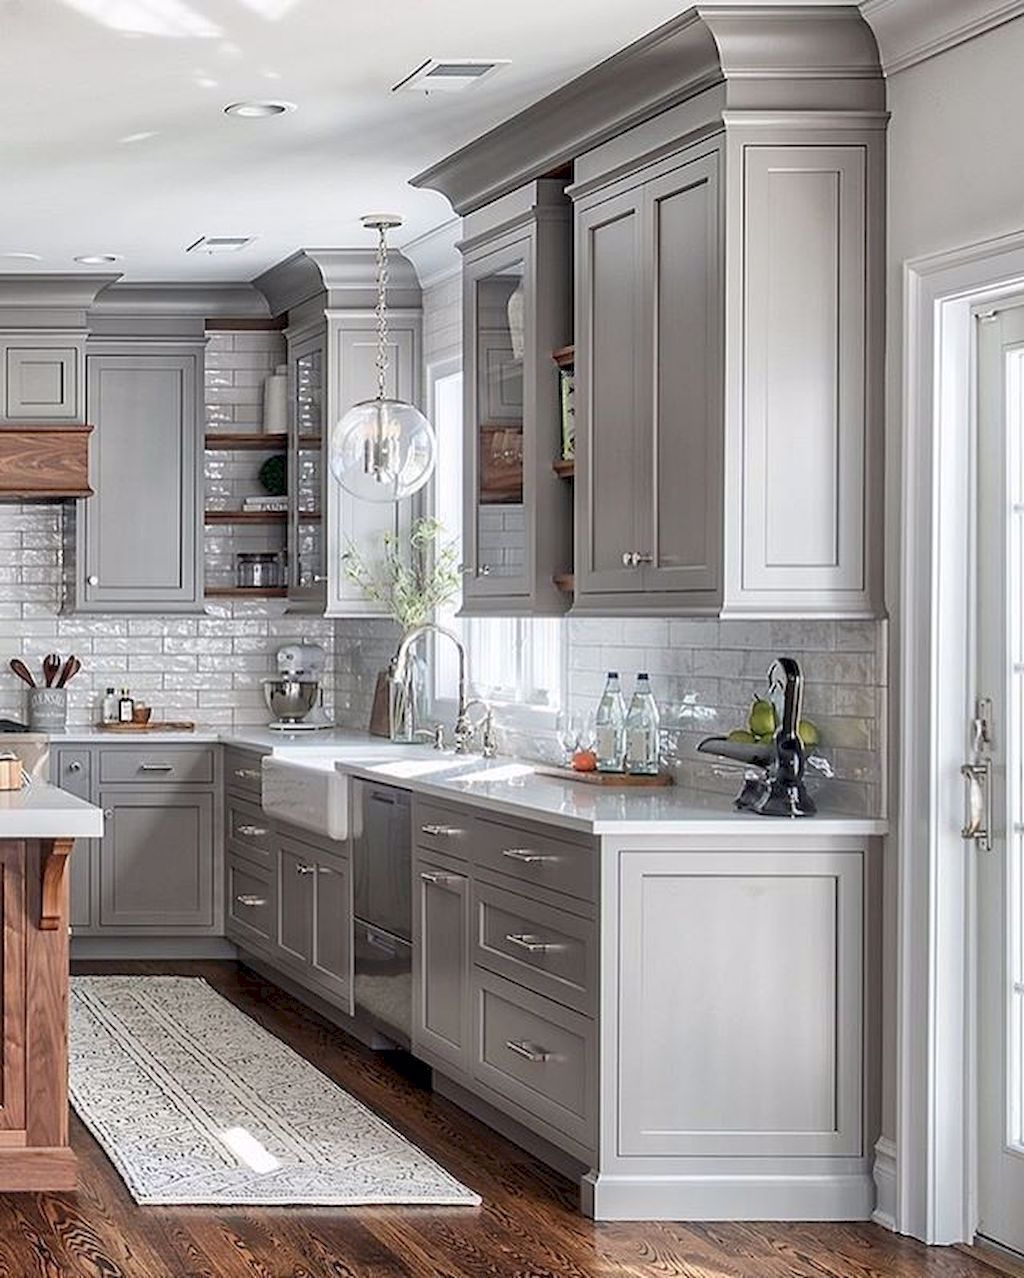 42 Cool Gray Kitchen Cabinets Best Gray For Kitchen Cabinets Modern Gray Kitchen Cabinets In 2020 Grey Kitchen Cabinets New Kitchen Cabinets Kitchen Cabinet Design